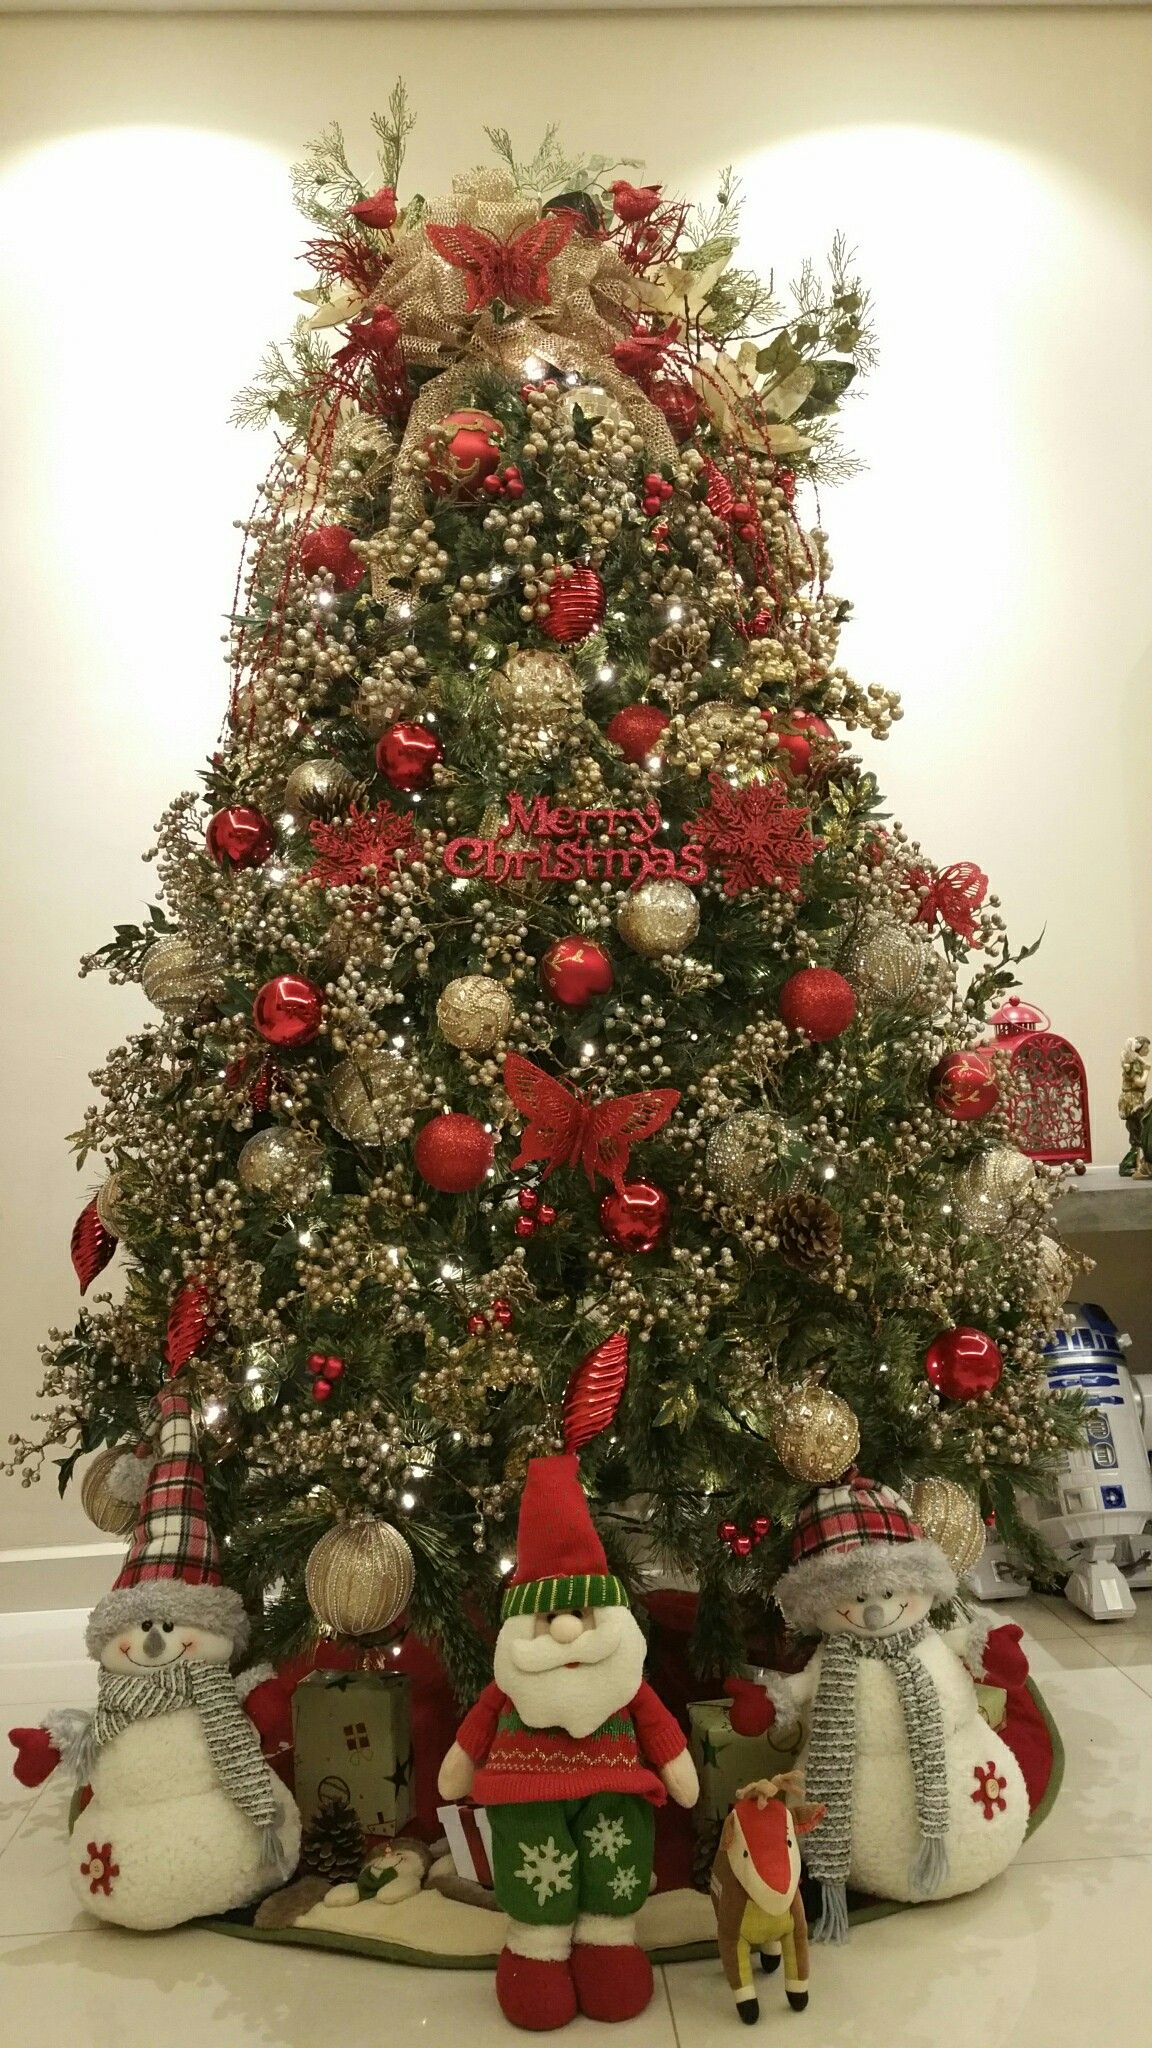 Christmas tree of sweets and champagne: make an original decoration